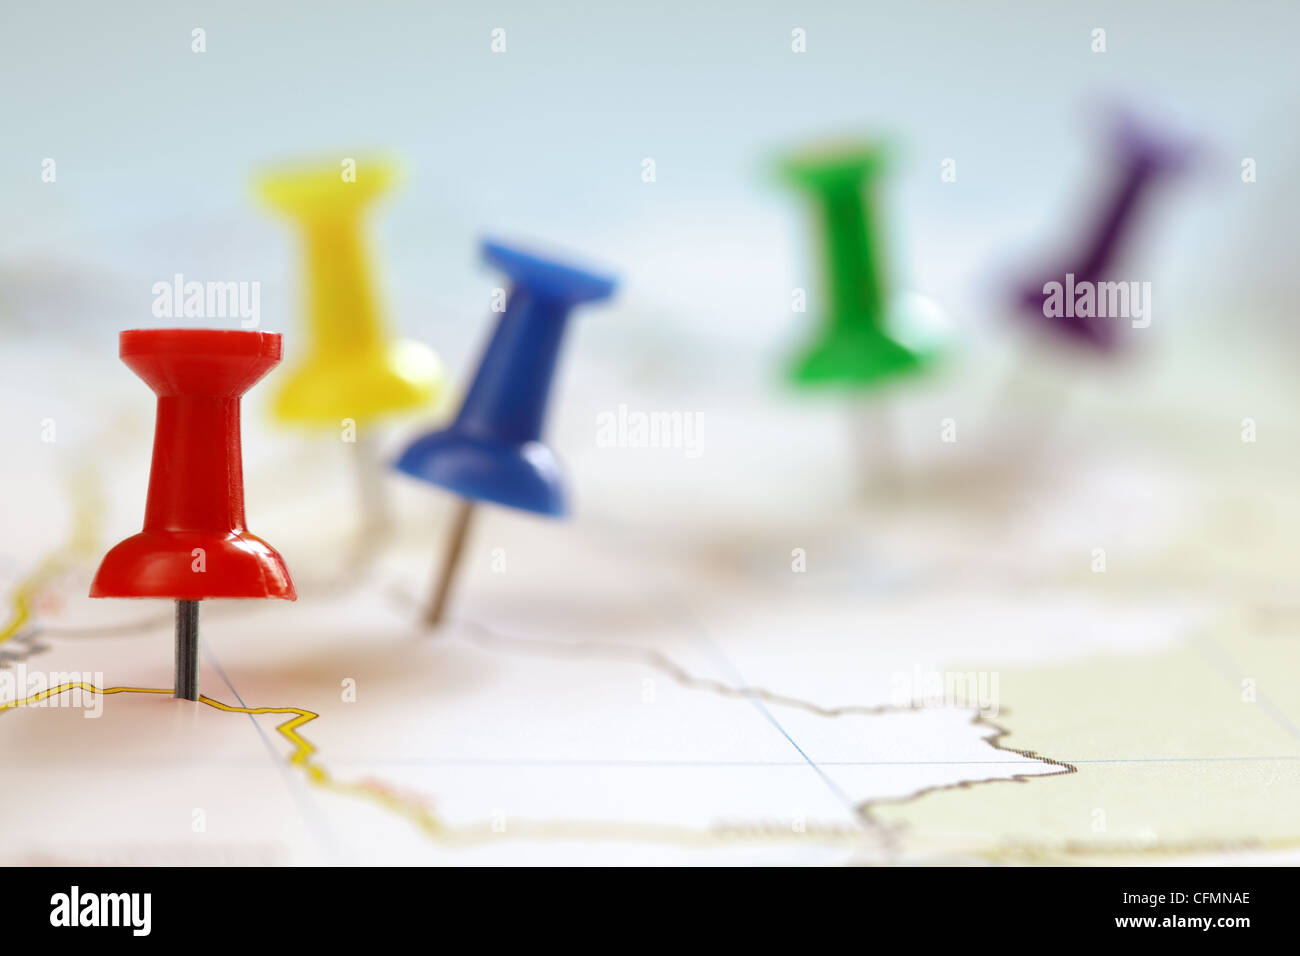 Push pin on map - Stock Image